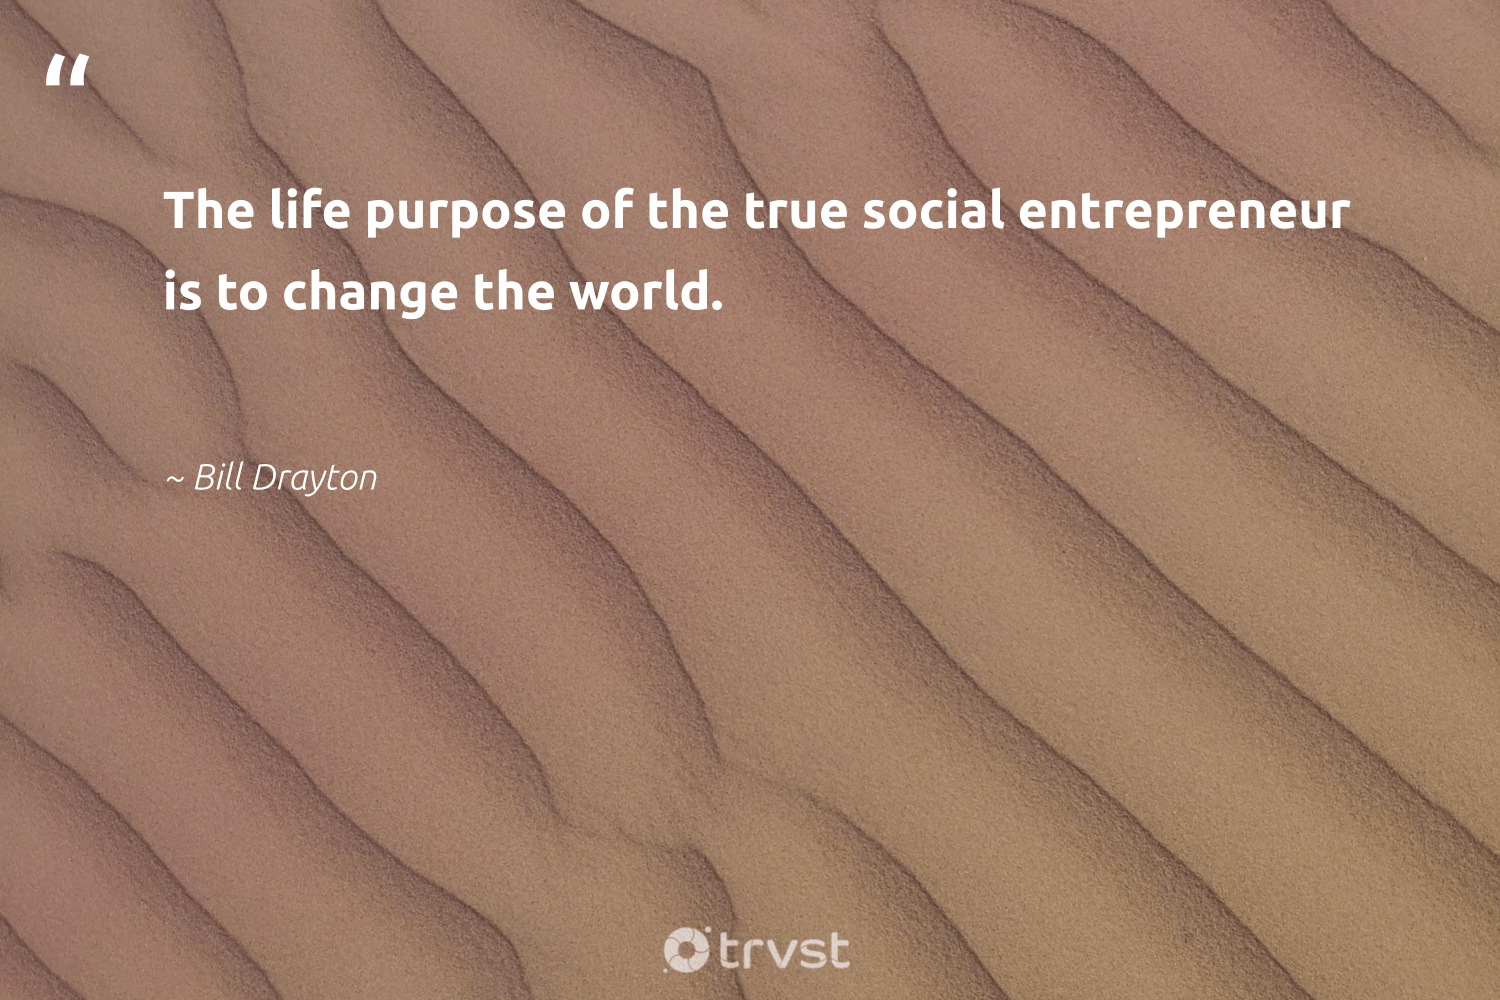 """""""The life purpose of the true social entrepreneur is to change the world.""""  - Bill Drayton #trvst #quotes #socialenterprise #changetheworld #socialentrepreneur #purpose #entrepreneur #socialimpact #ethicalbusiness #dogood #bethechange #sociallyconscious"""